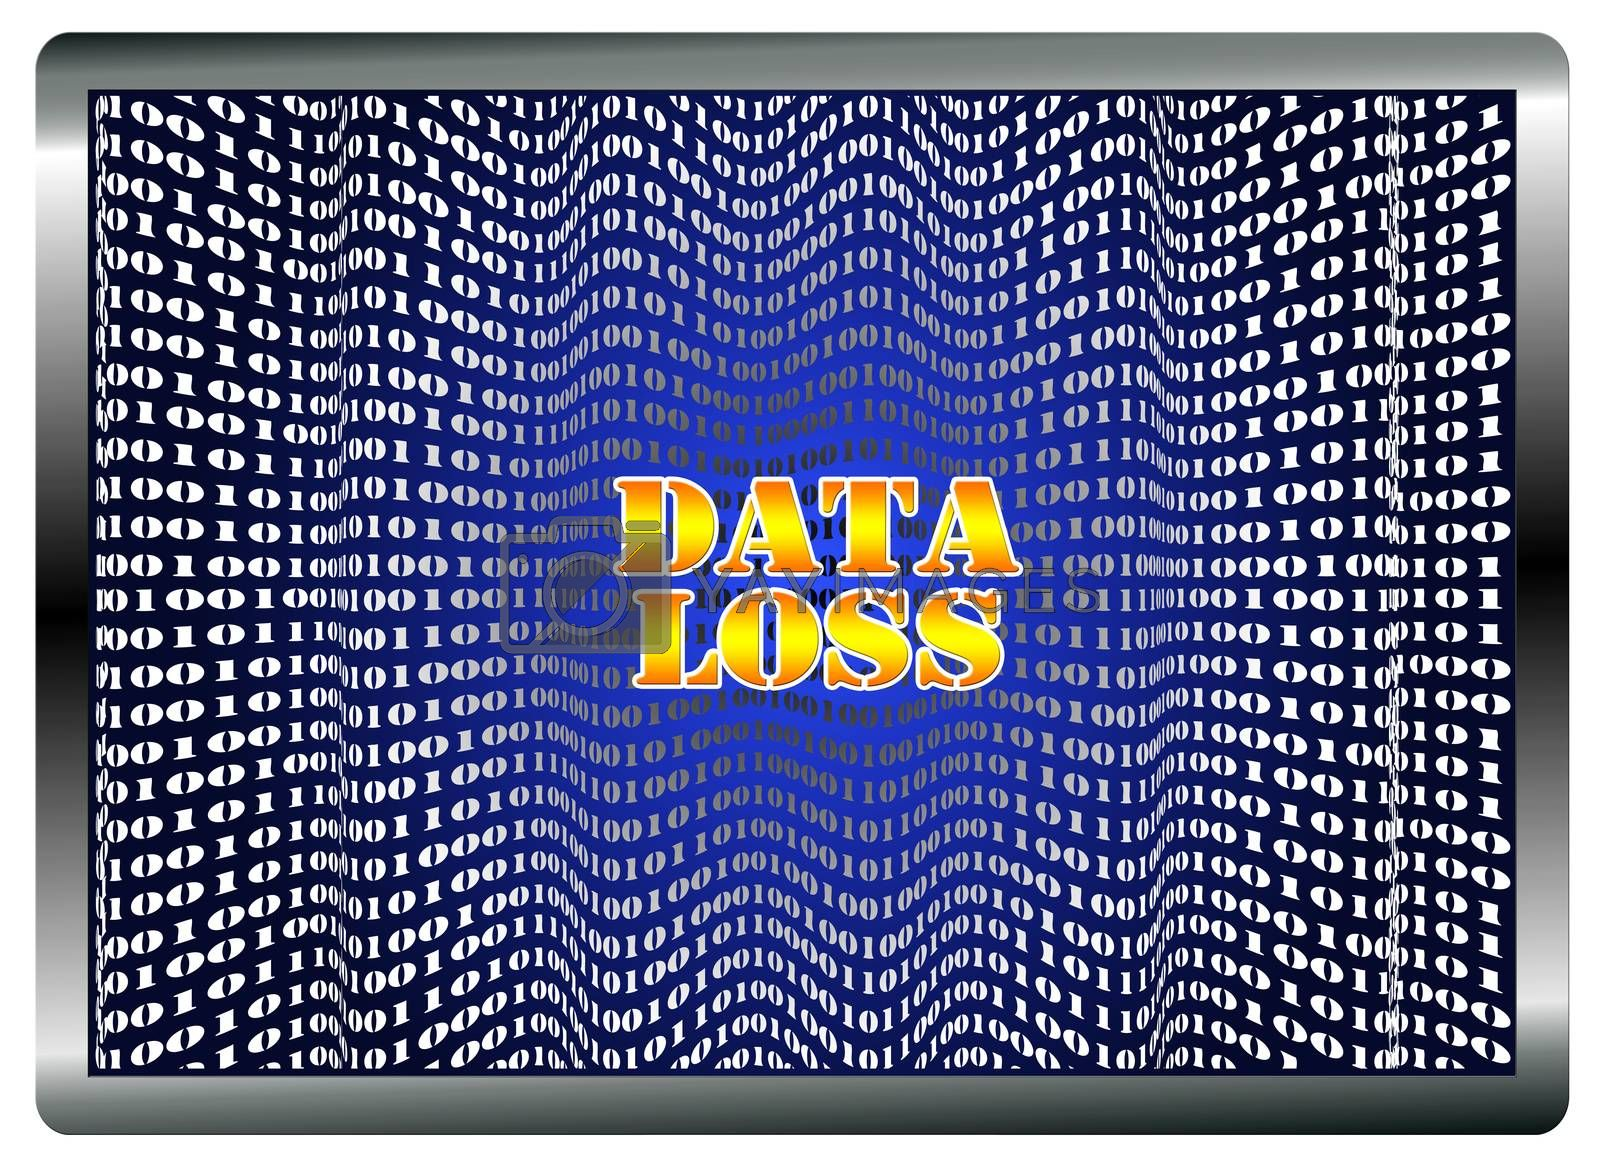 Software corruption, hardware malfunction, human error, virus can lead to loss of data